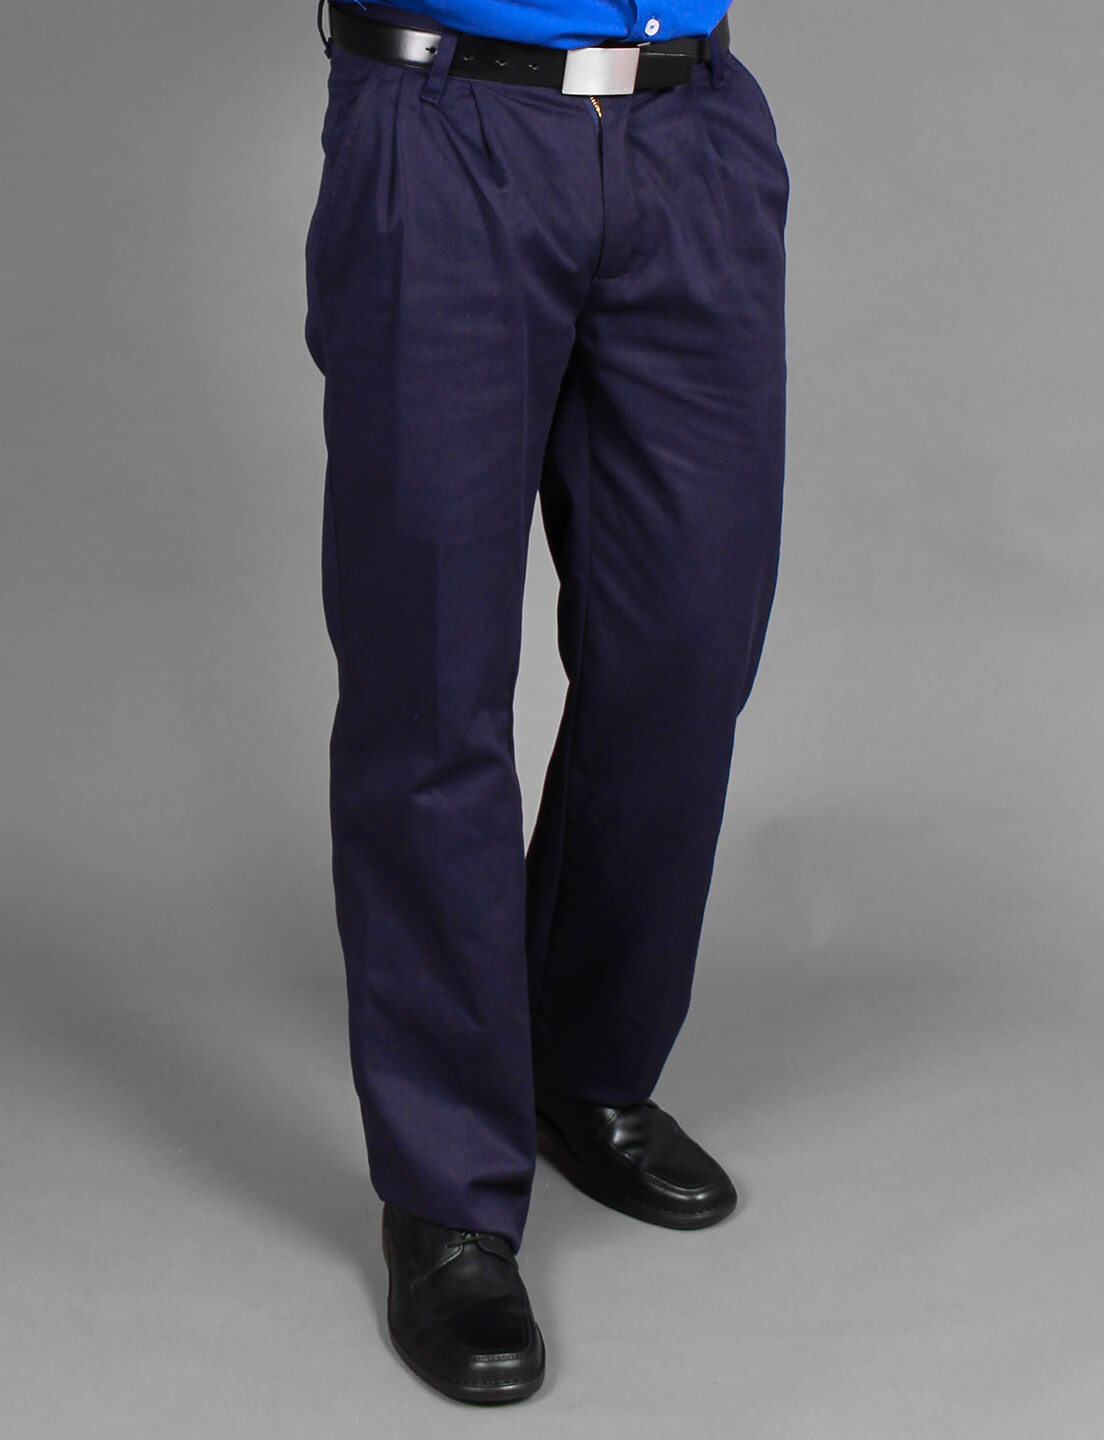 Azul Casual Uniformes Color Pantalón En Alfa Marino Cambridge Tela mOyvNn80w